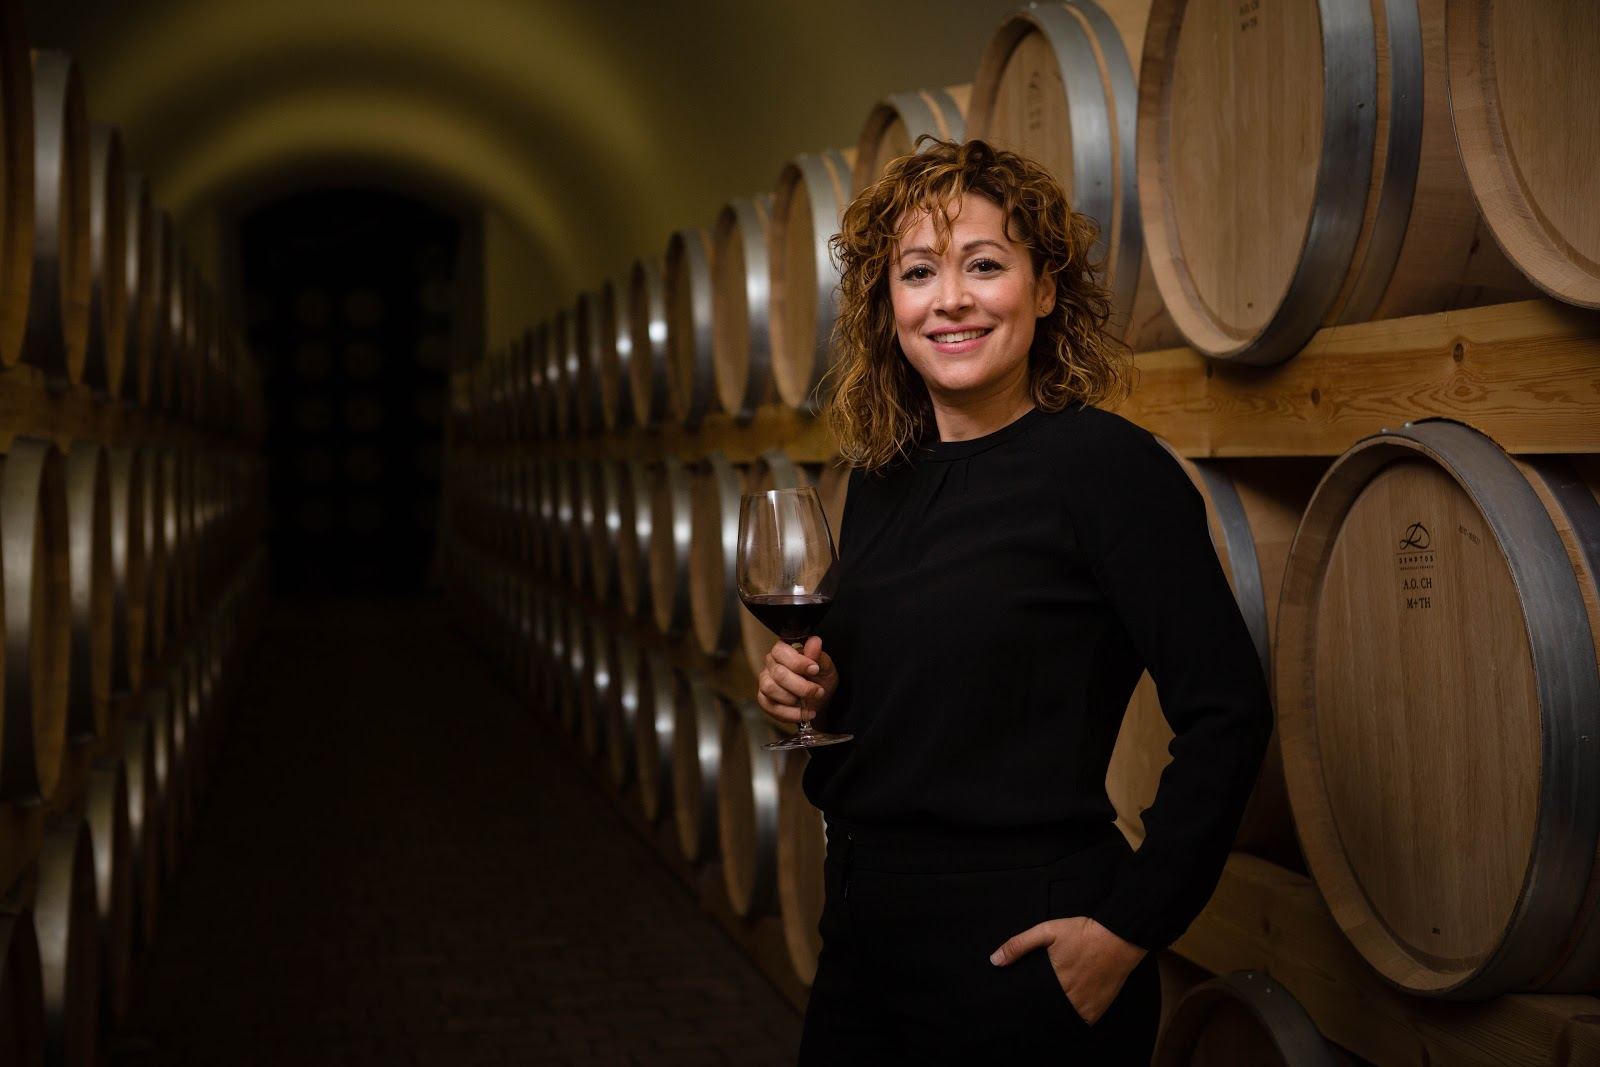 スペイン人女性初のマスター・オブ・ワイン誕生!【Almudena Alberca achieves the first spanish woman Master of Wine】